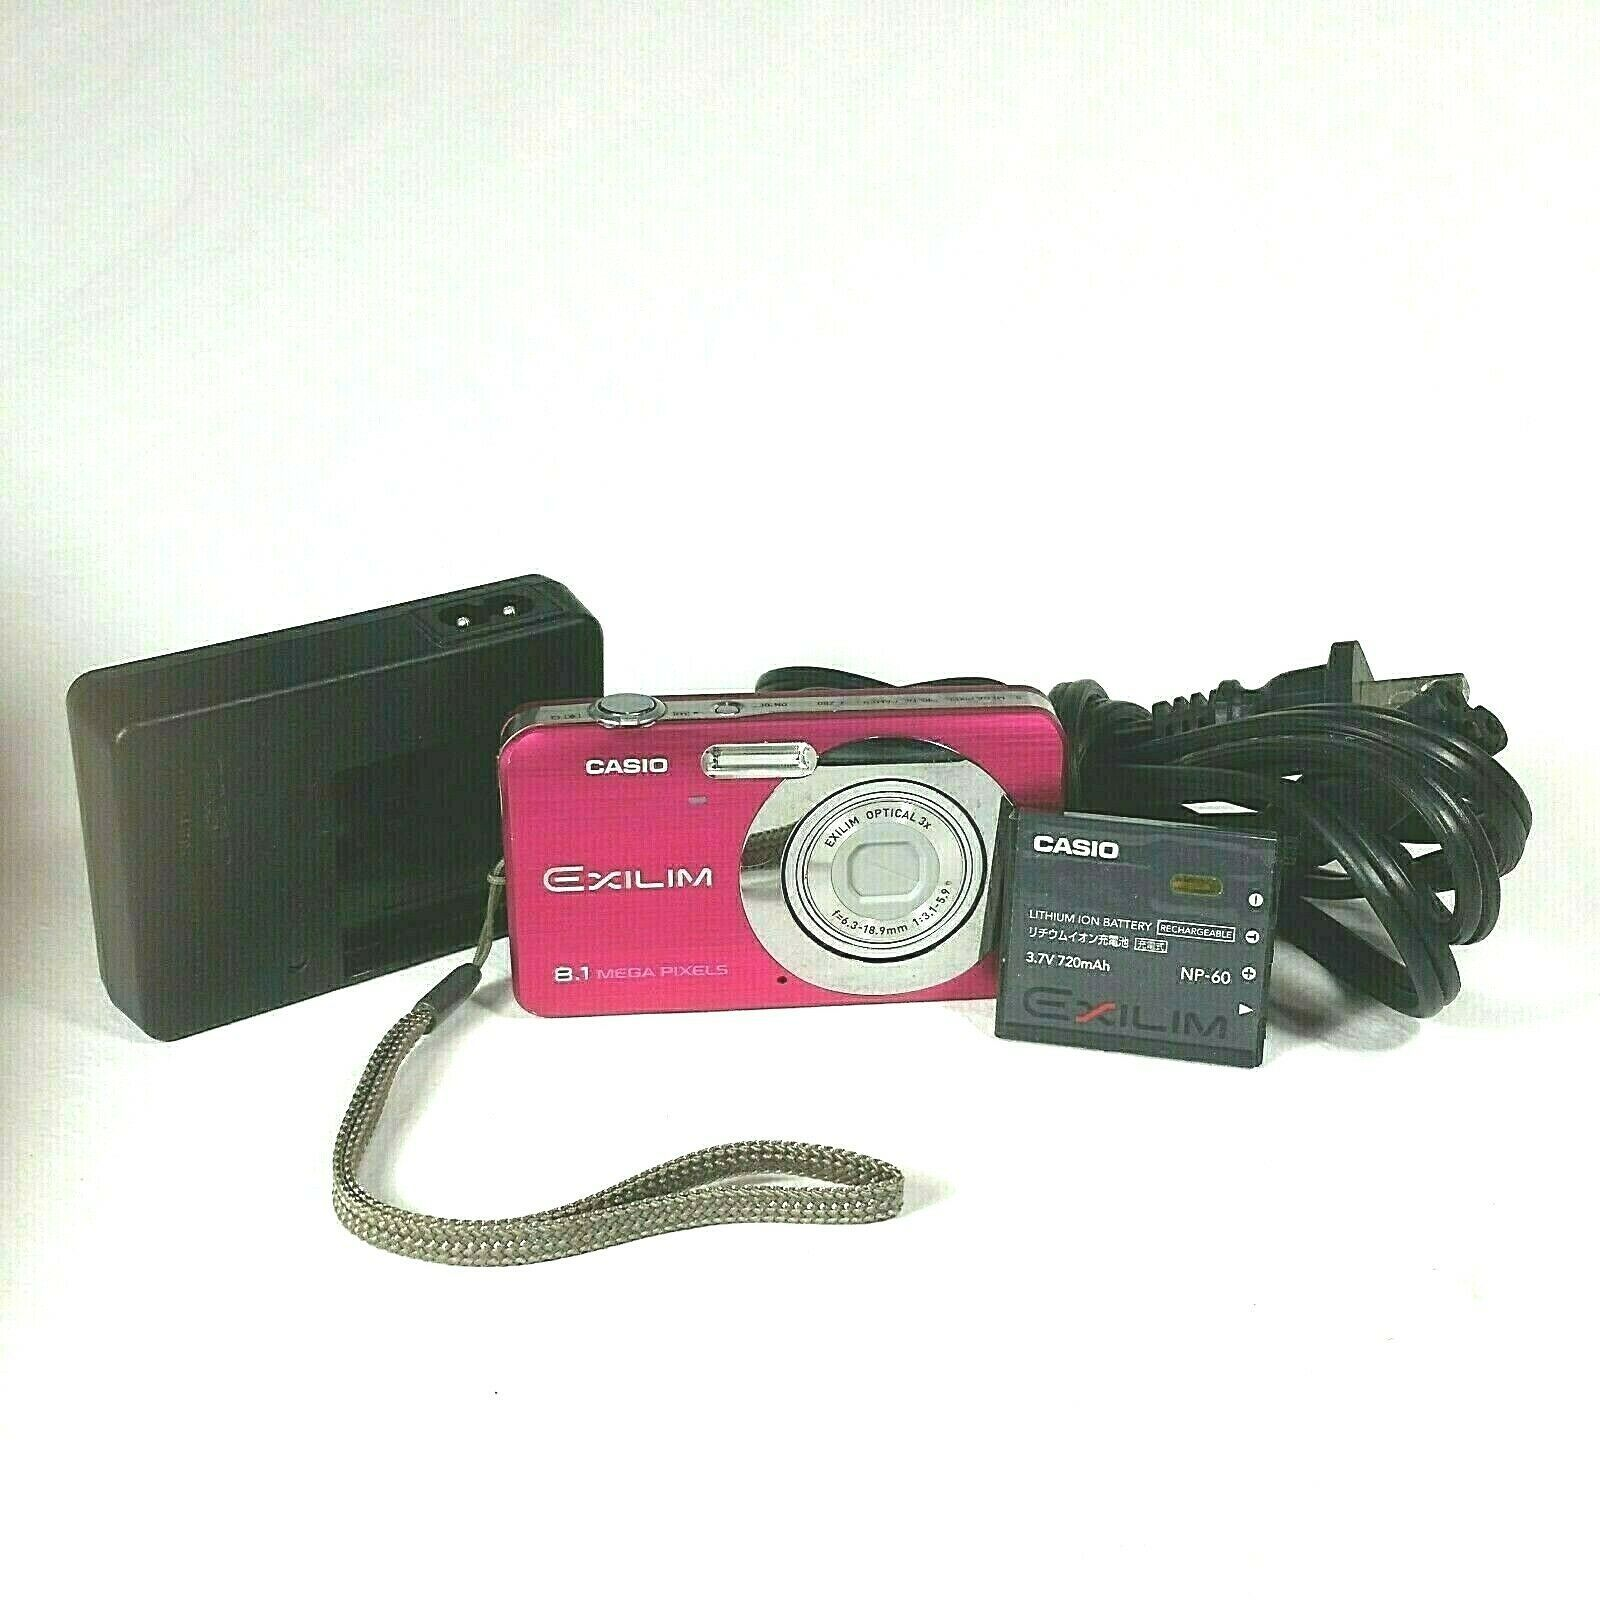 Primary image for Casio Digital Camera EXILIM EX-Z80A 8.1 Megapixels 3X Optical Zoom Pink Charger